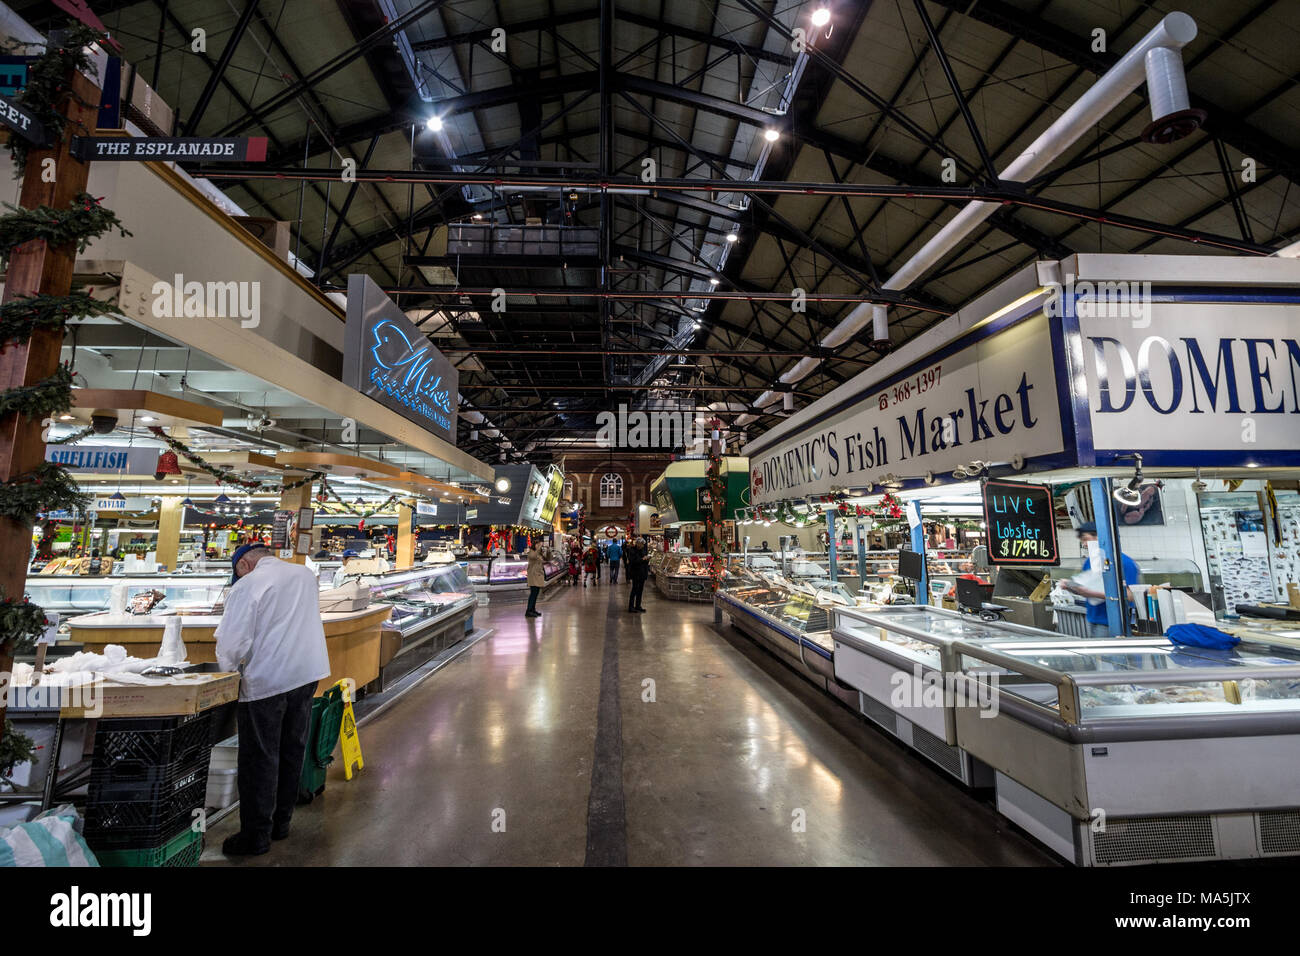 TORONTO, CANADA - DECEMBER 20, 2016: Interior of St Lawrence market with fish market stalls in the early morning. Saint Lawrence market is one of the  - Stock Image